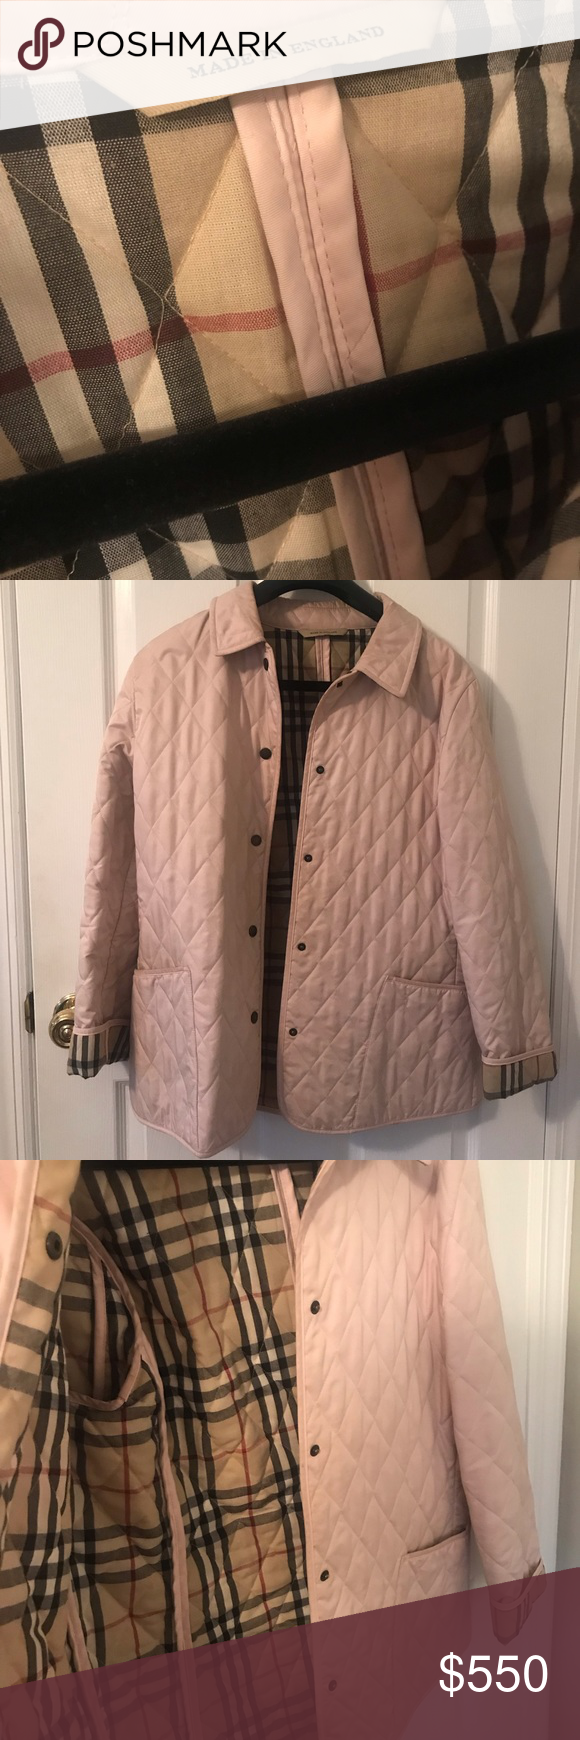 Light Pink Burberry Quilted Jacket With Images Burberry Quilted Jacket Quilted Jacket Quilted